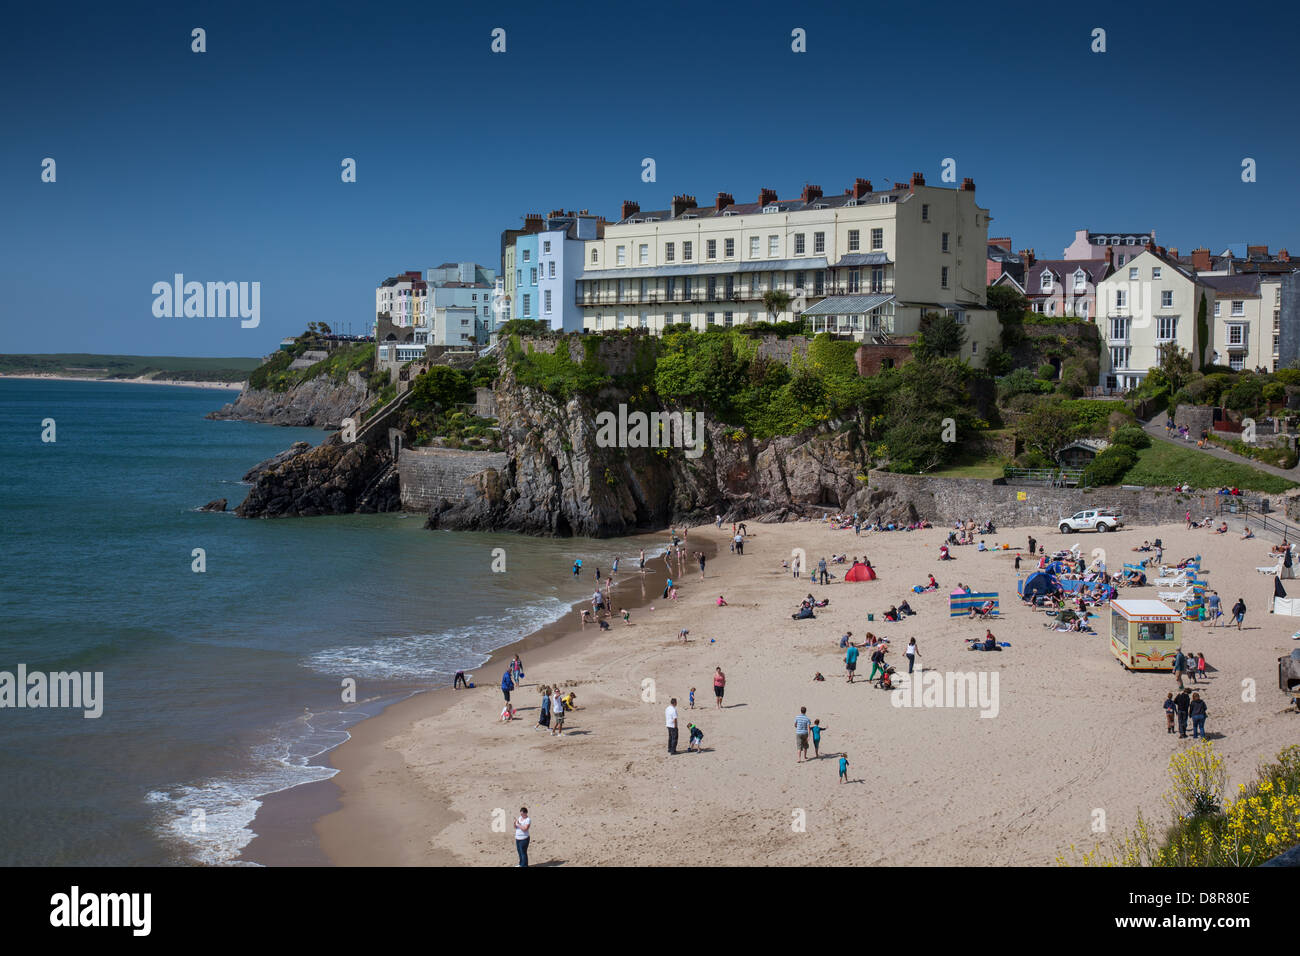 South Beach, Tenby, Pembrokeshire, Wales - Stock Image